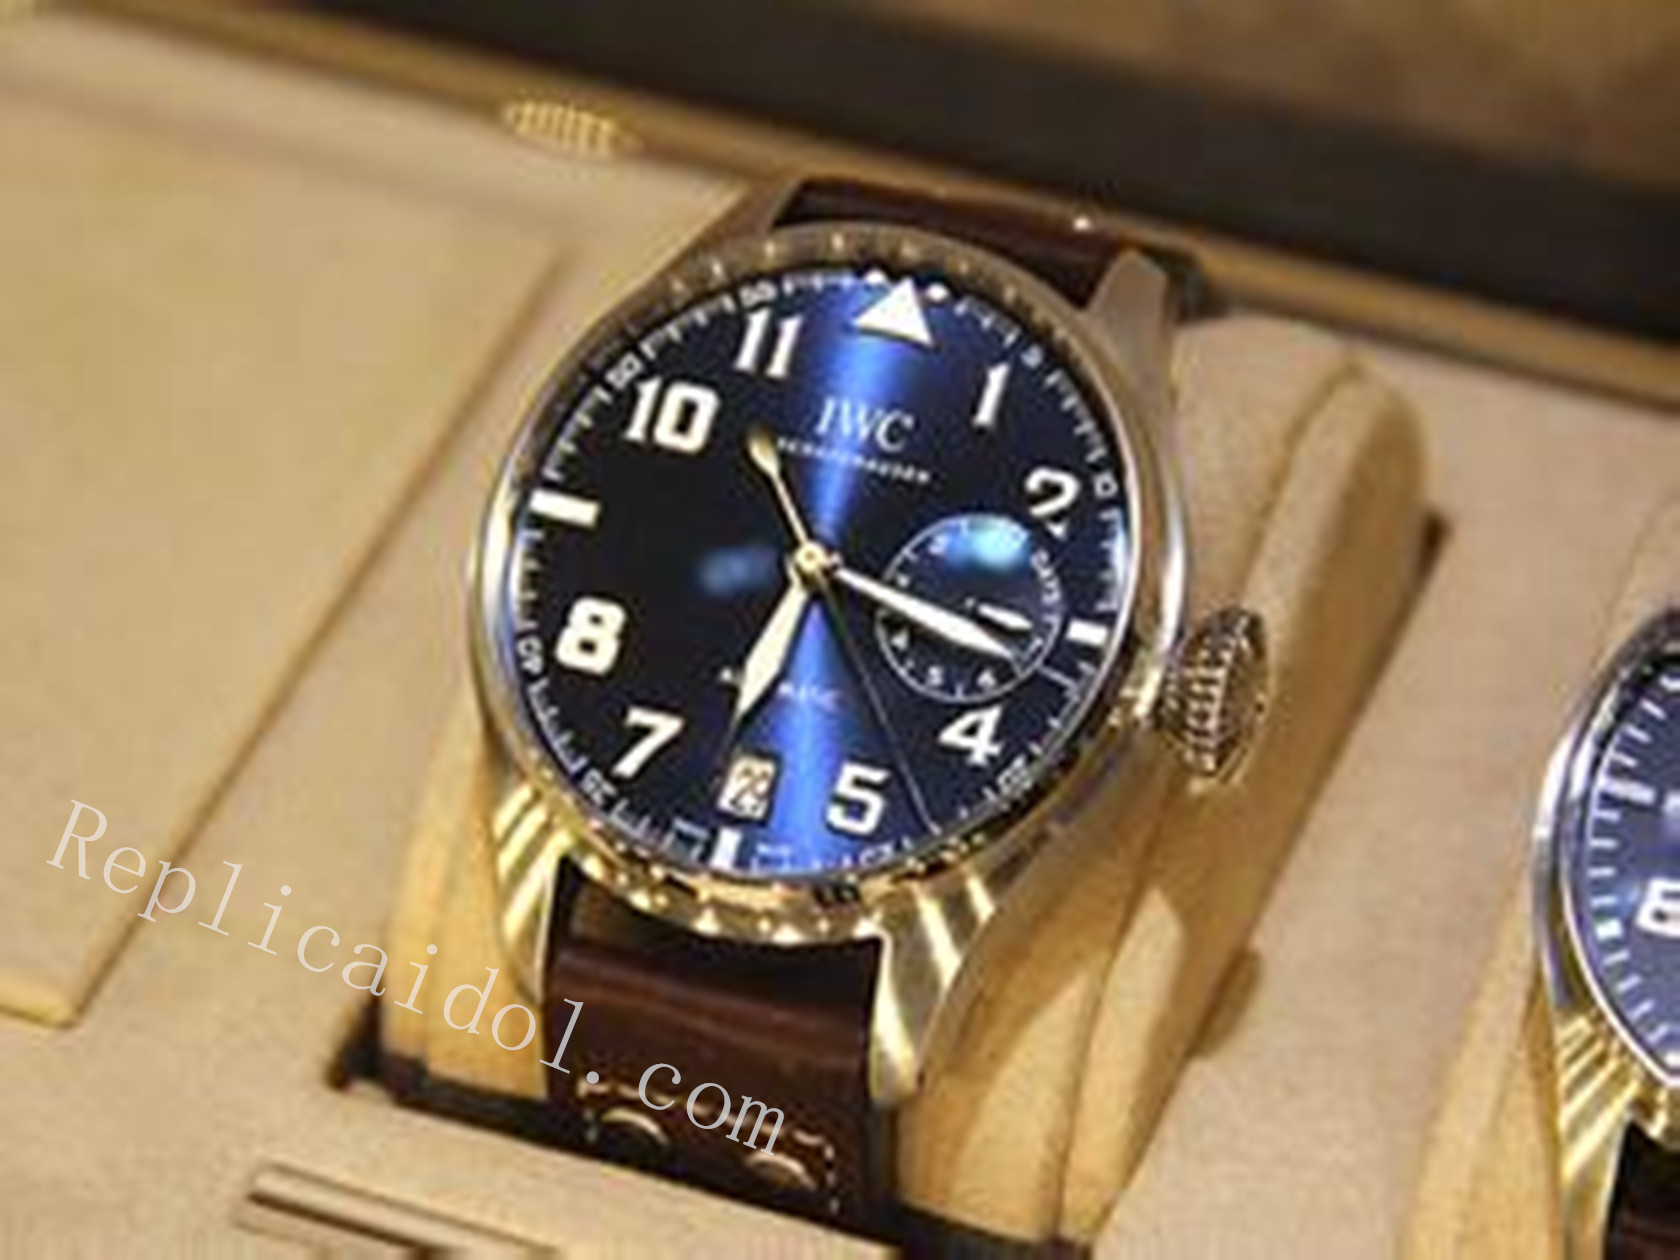 Perfect Watches - High Quality Replica Watches at Cheap ...